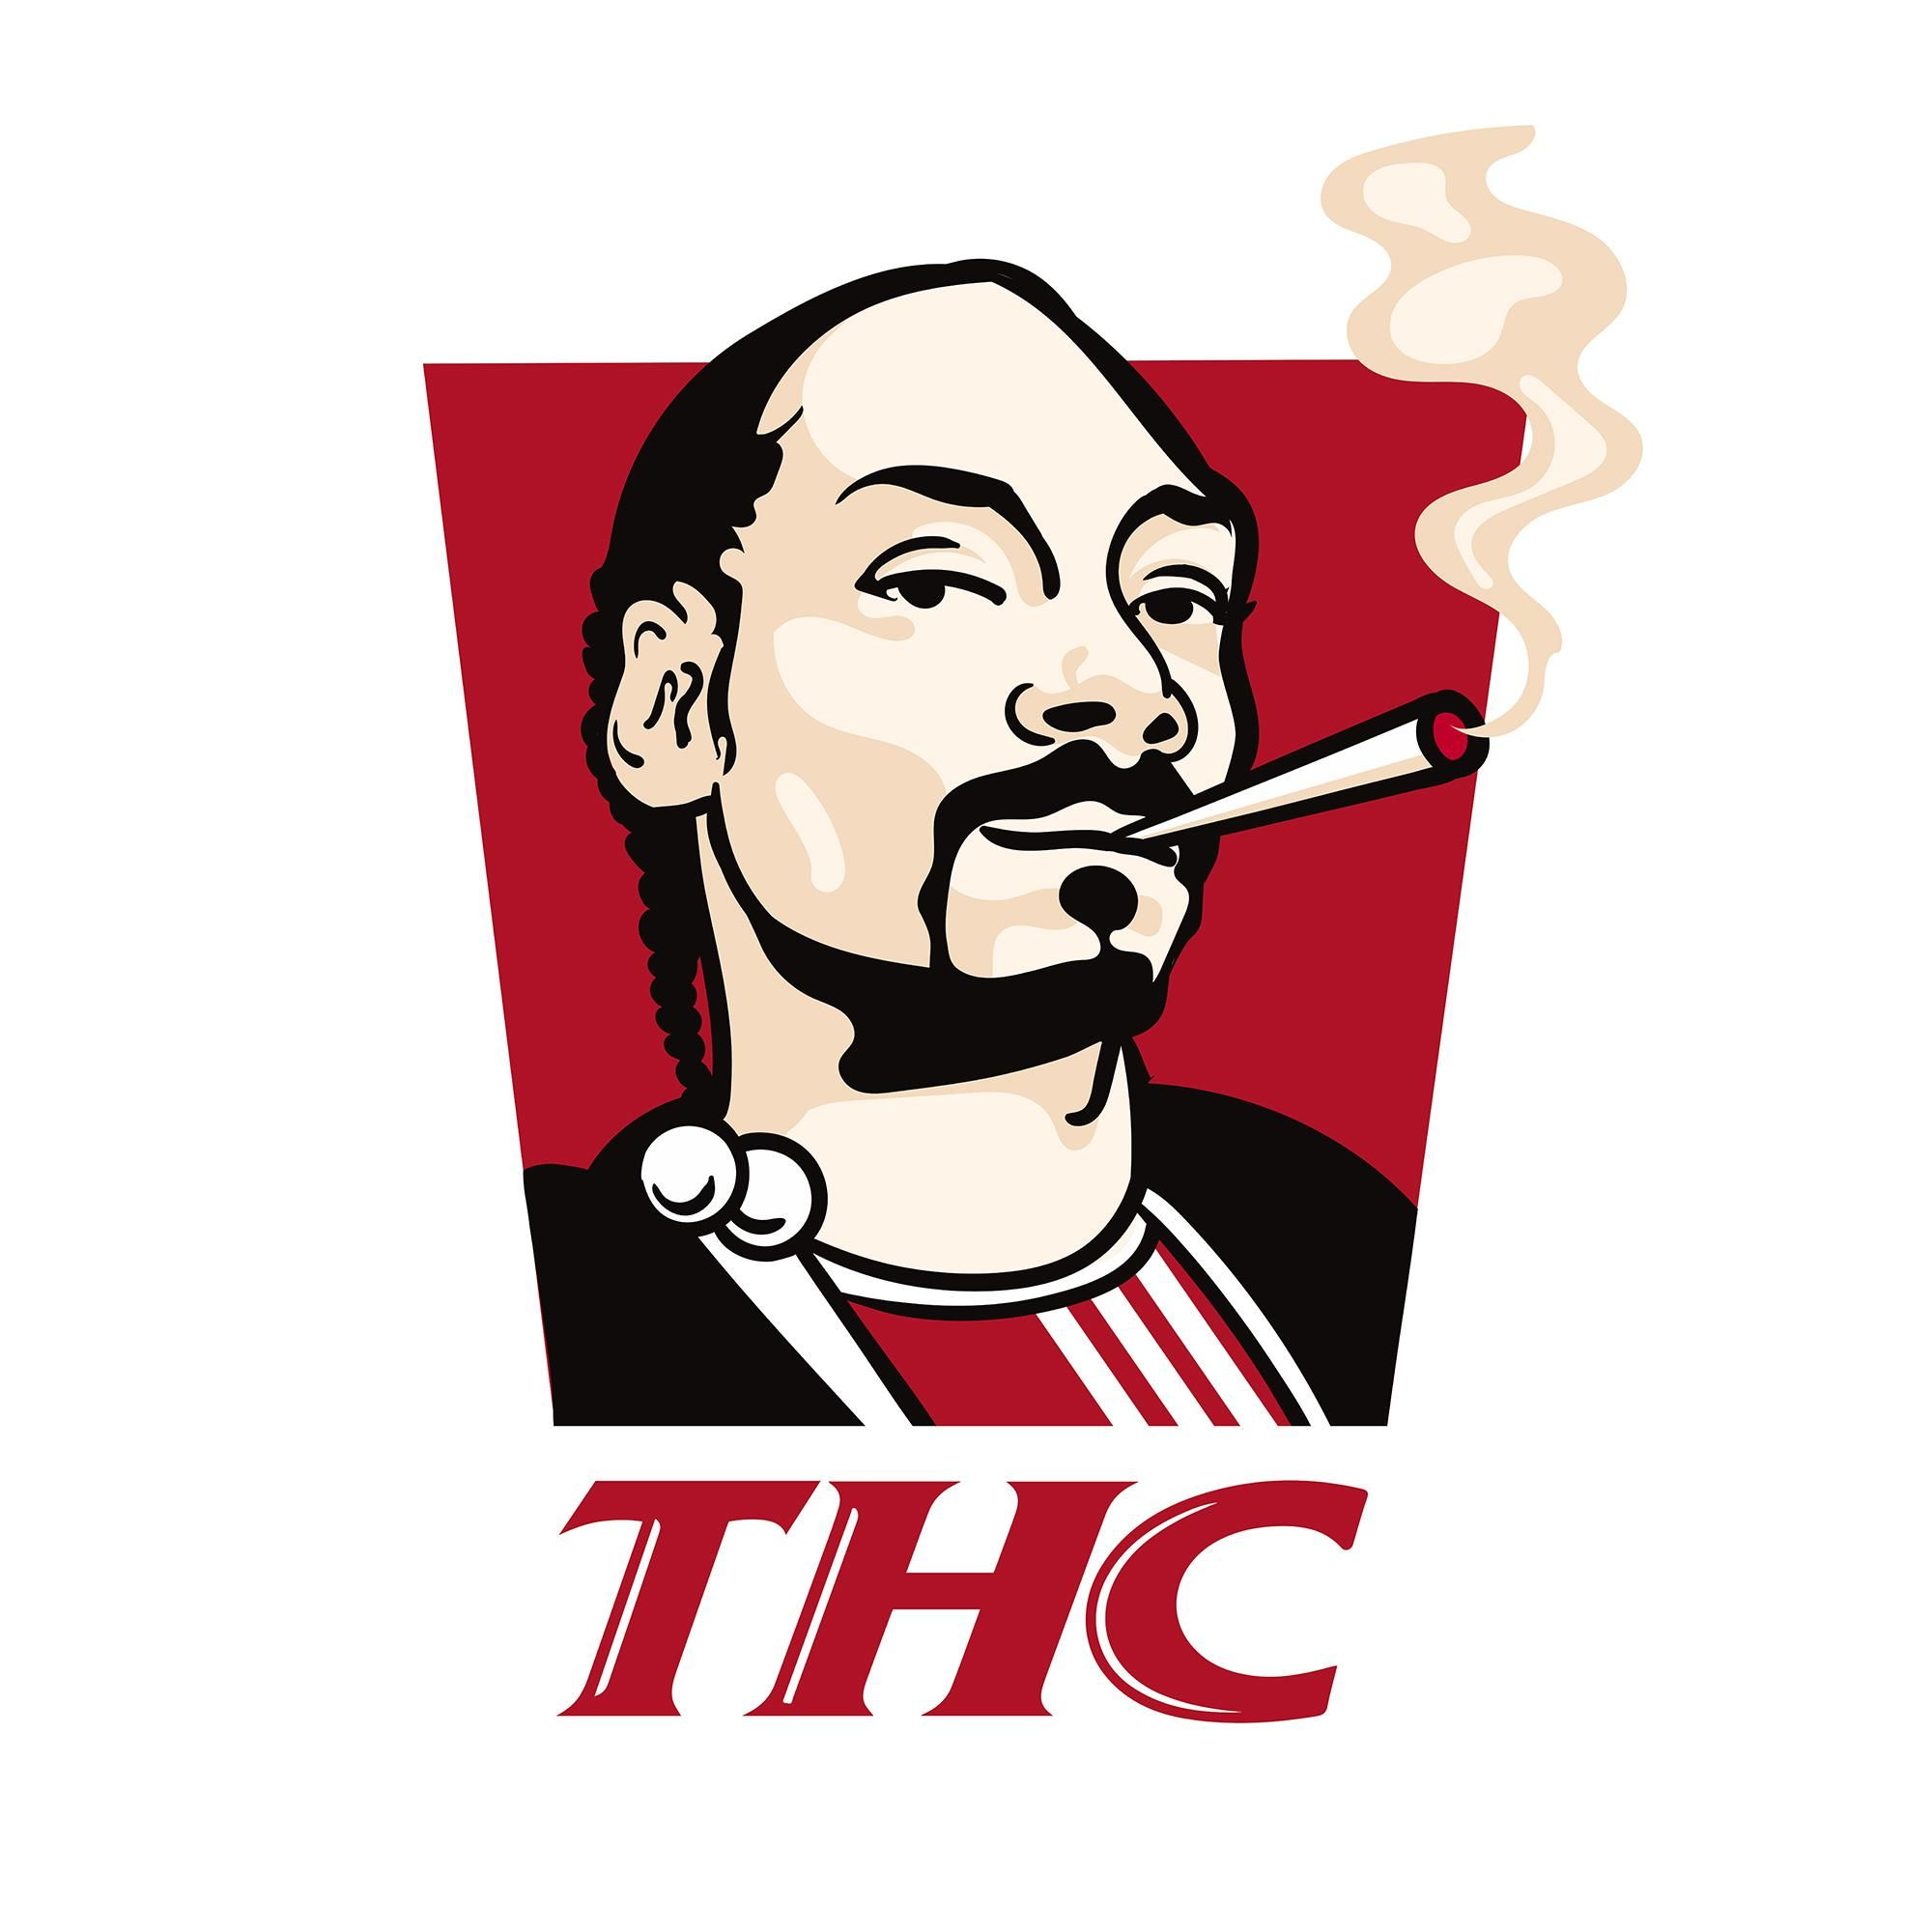 The official logo of Cannabis